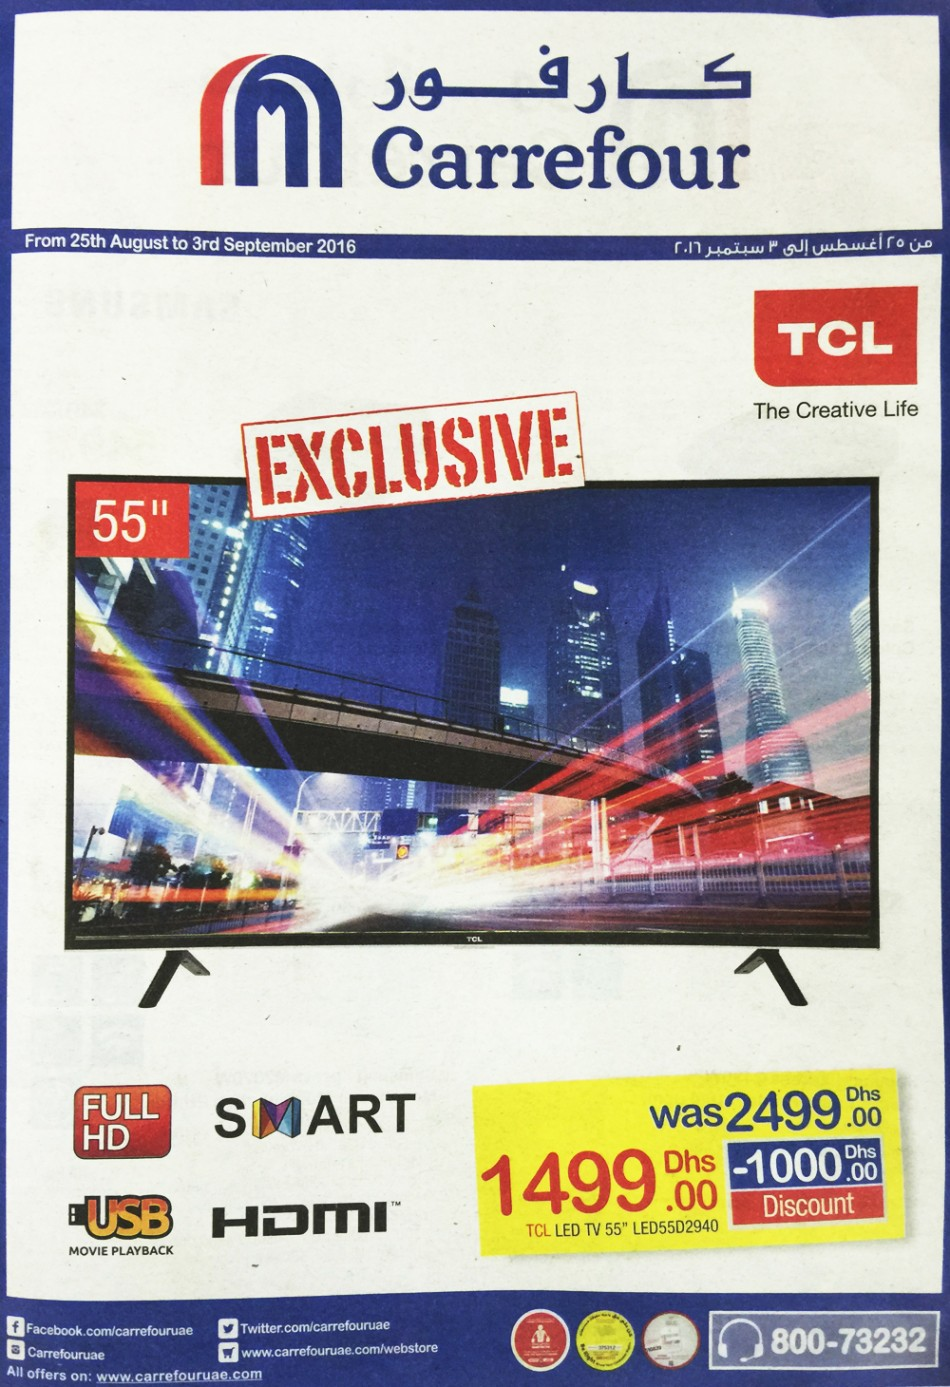 tcl smart tv exclucive offer in carrefour offer start in 25 aug to 3rd sept 2016. Black Bedroom Furniture Sets. Home Design Ideas